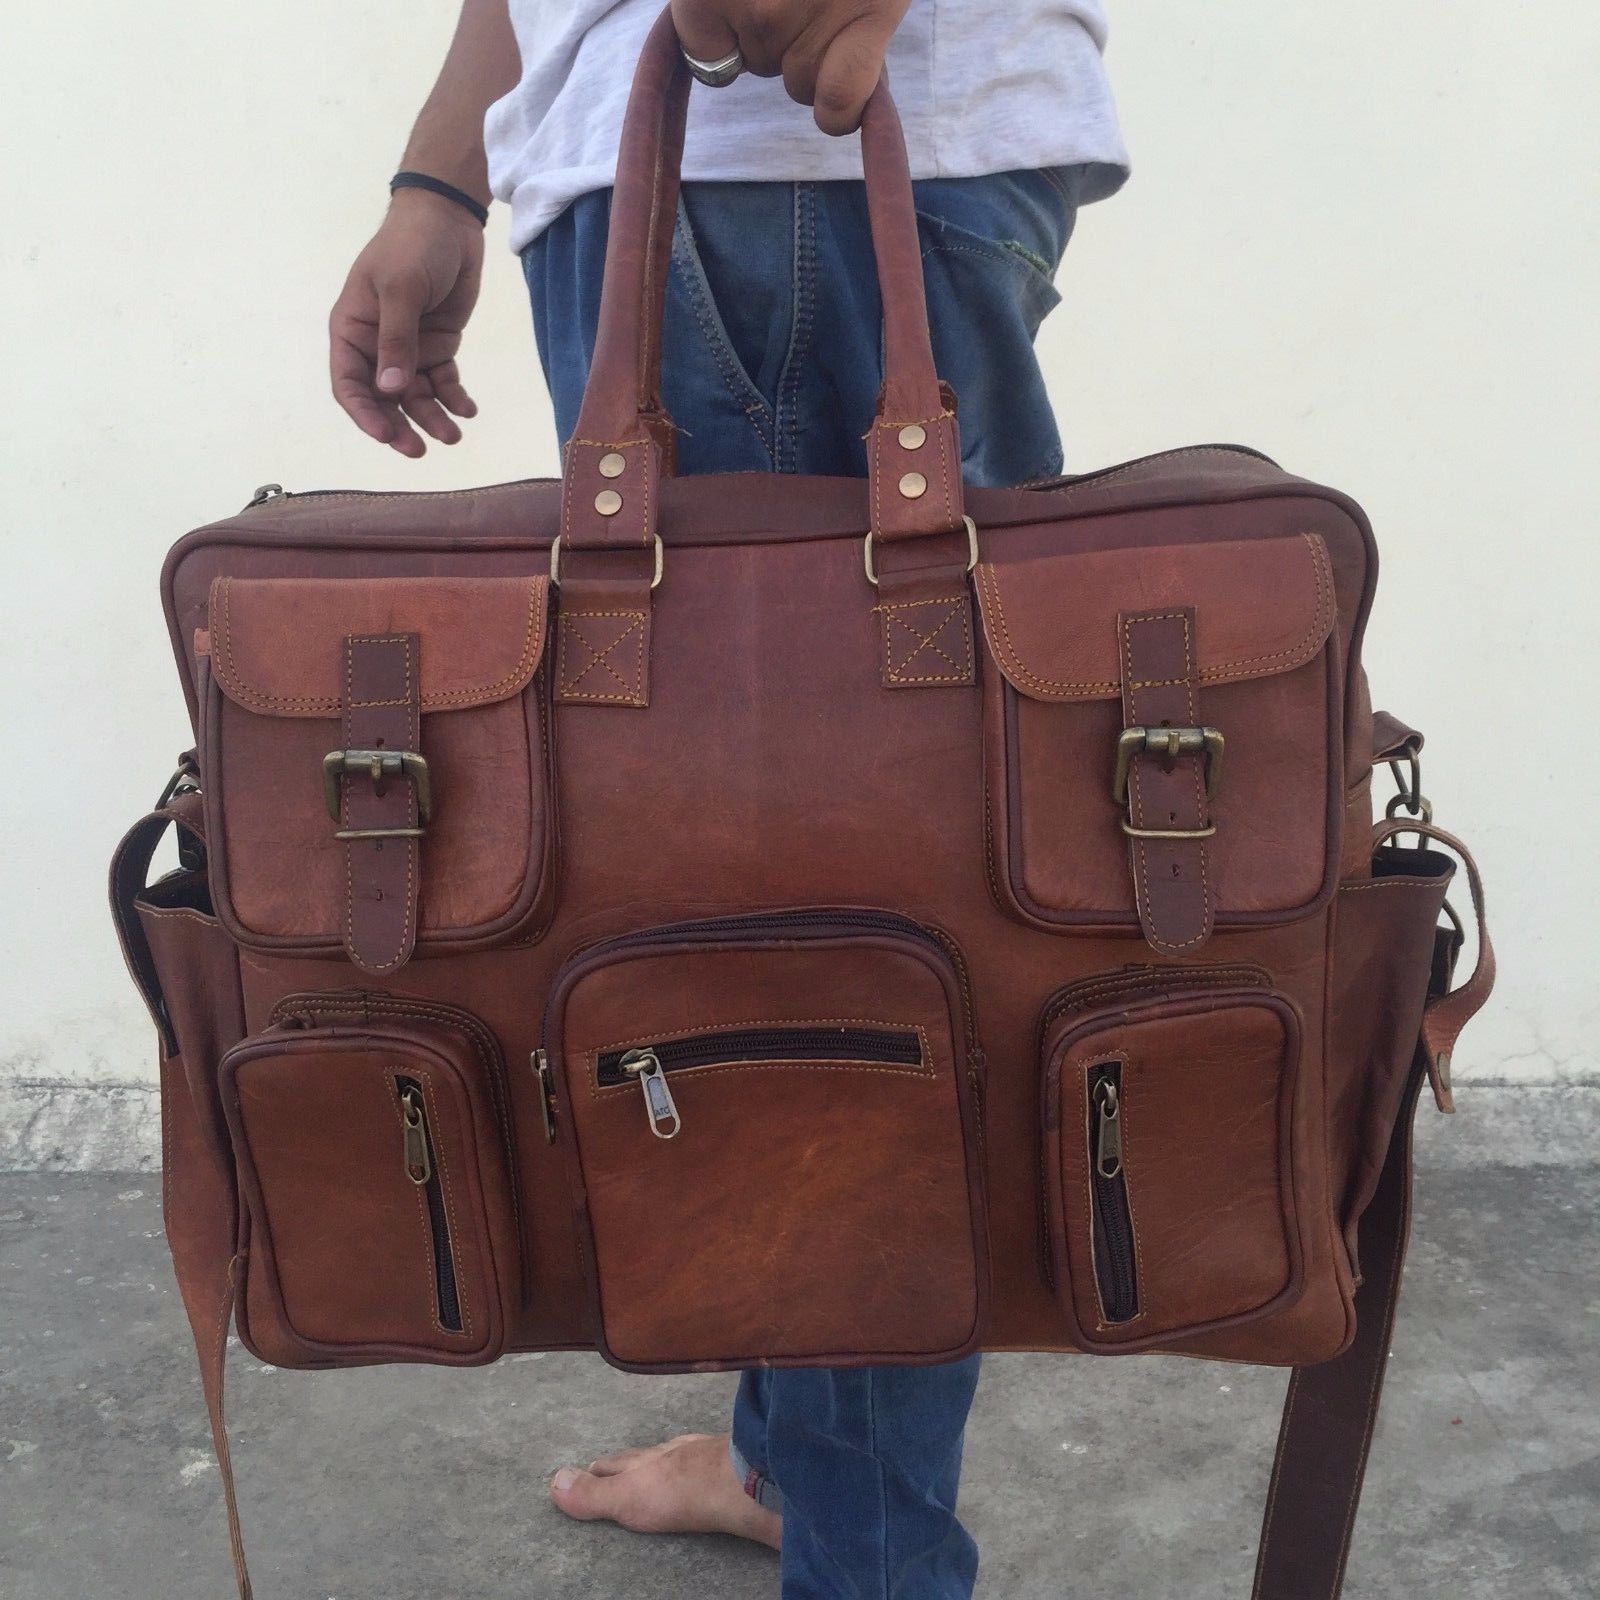 26fa6dd7ae 57. 57. Previous. Bag Leather Goat Gym Duffel Men Travel Luggage Genuine  Brown New S Vintage New